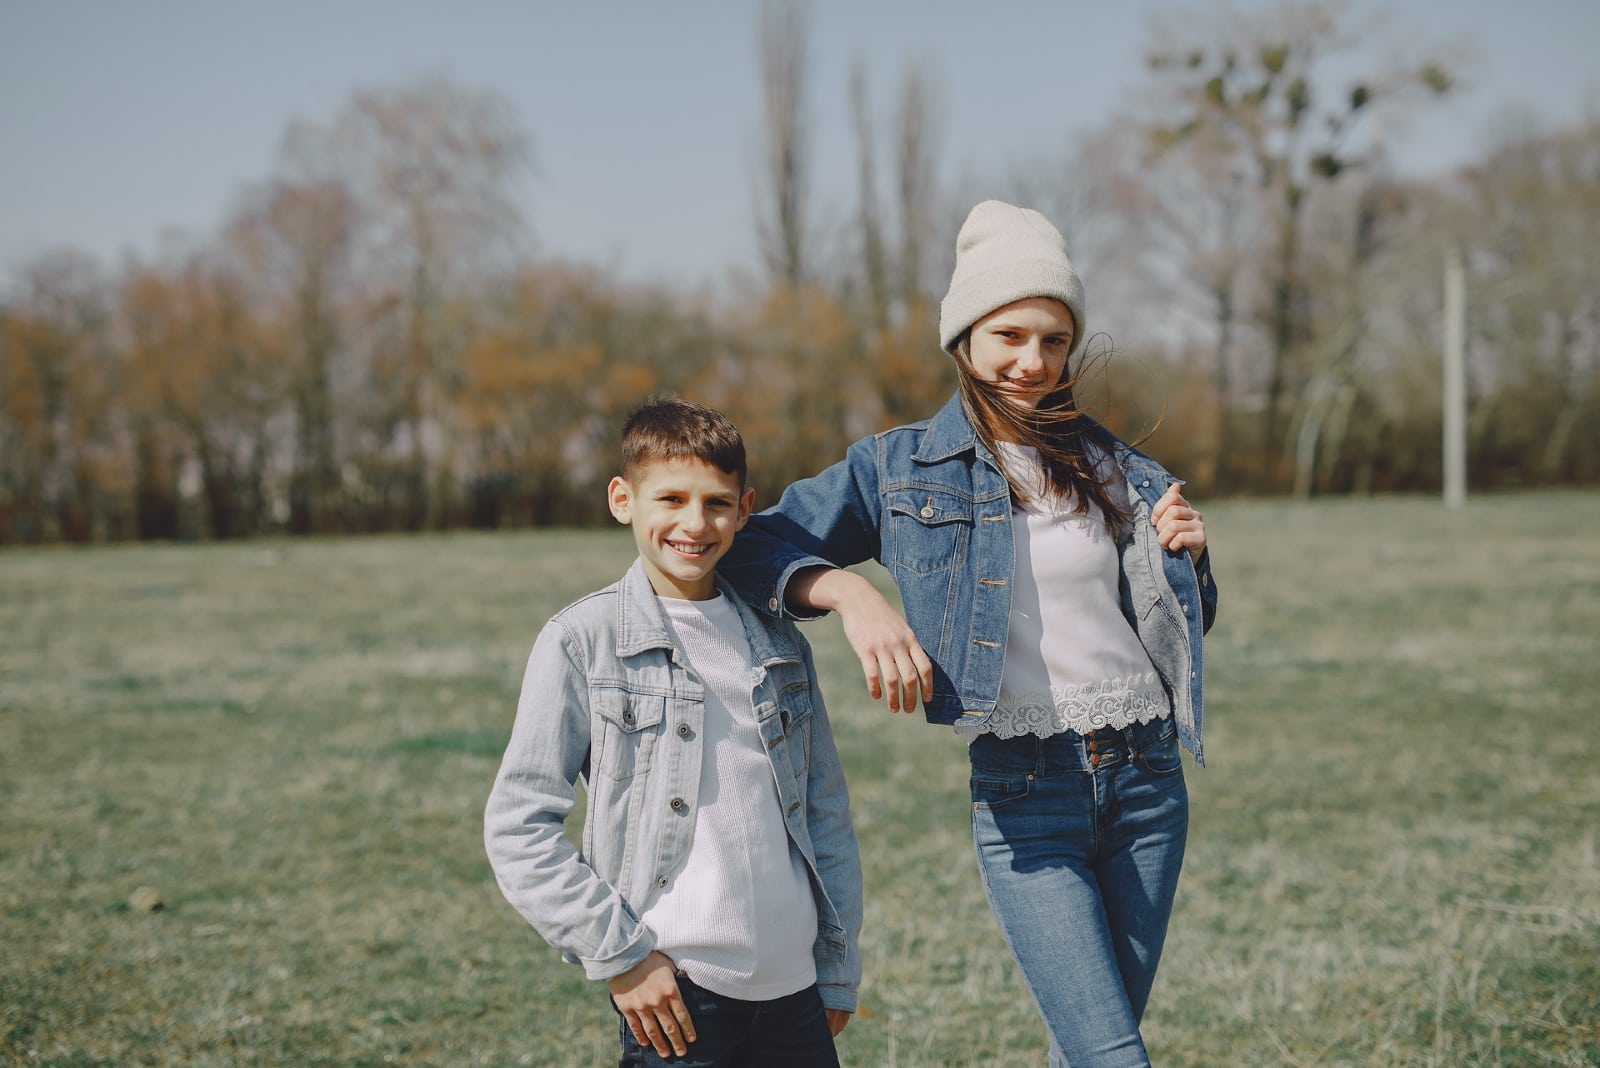 brother and sister in denim jackets standing on grass